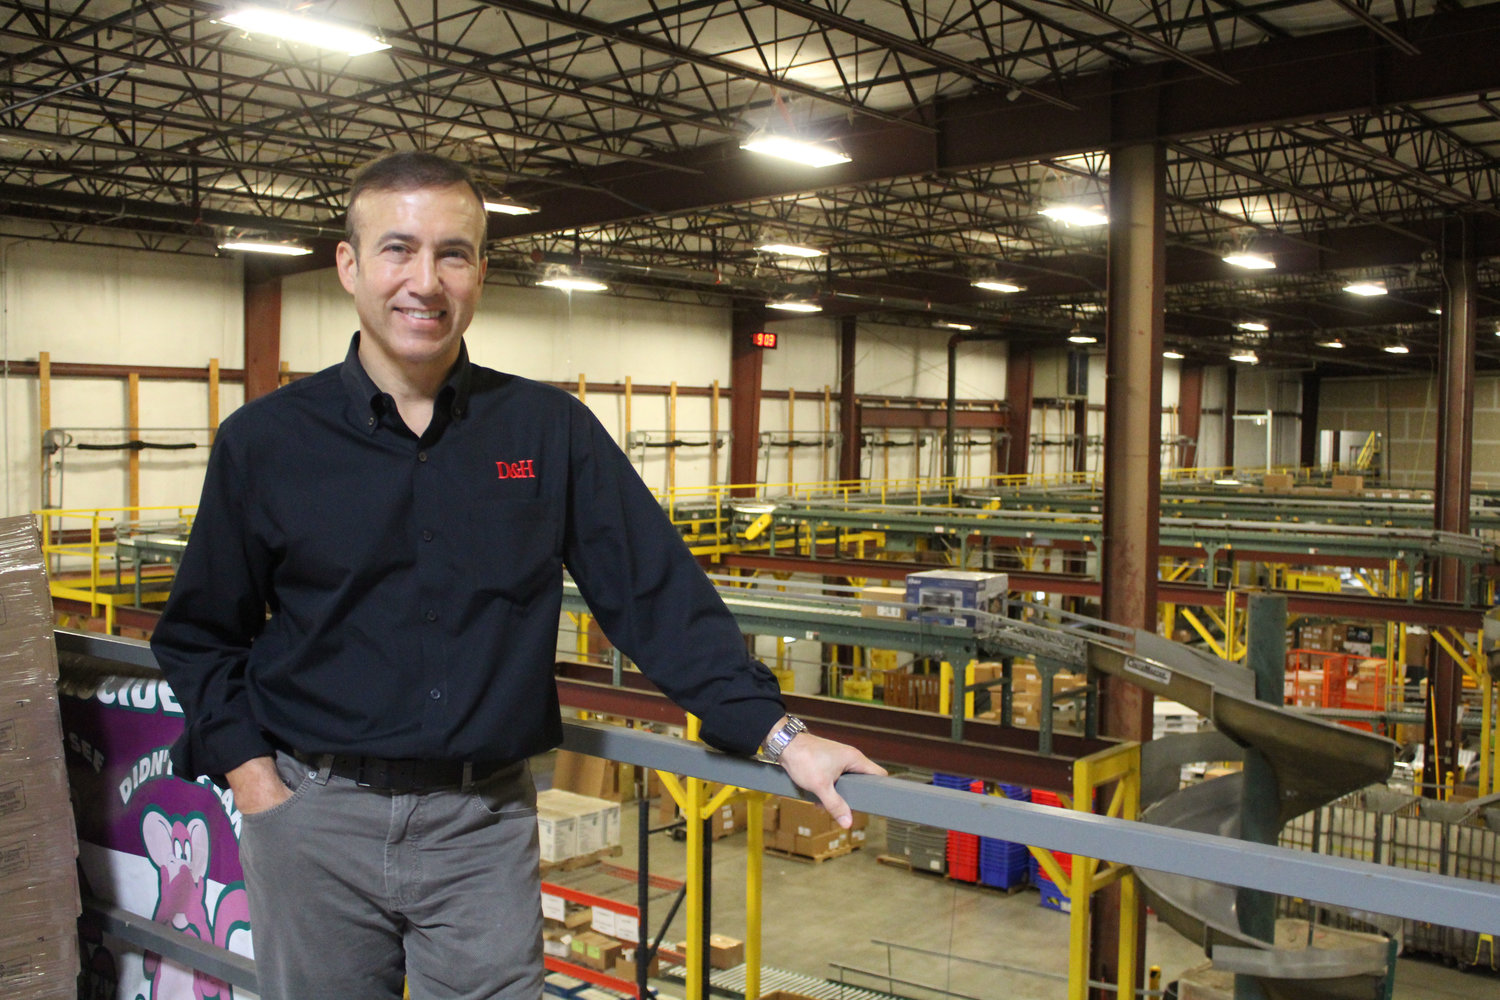 Michael Schwab, Co-President of D&H Distributing, stands in the company's distribution hub in Harrisburg. The company plans to build a new hub on the Jednota site in Lower Swatara.